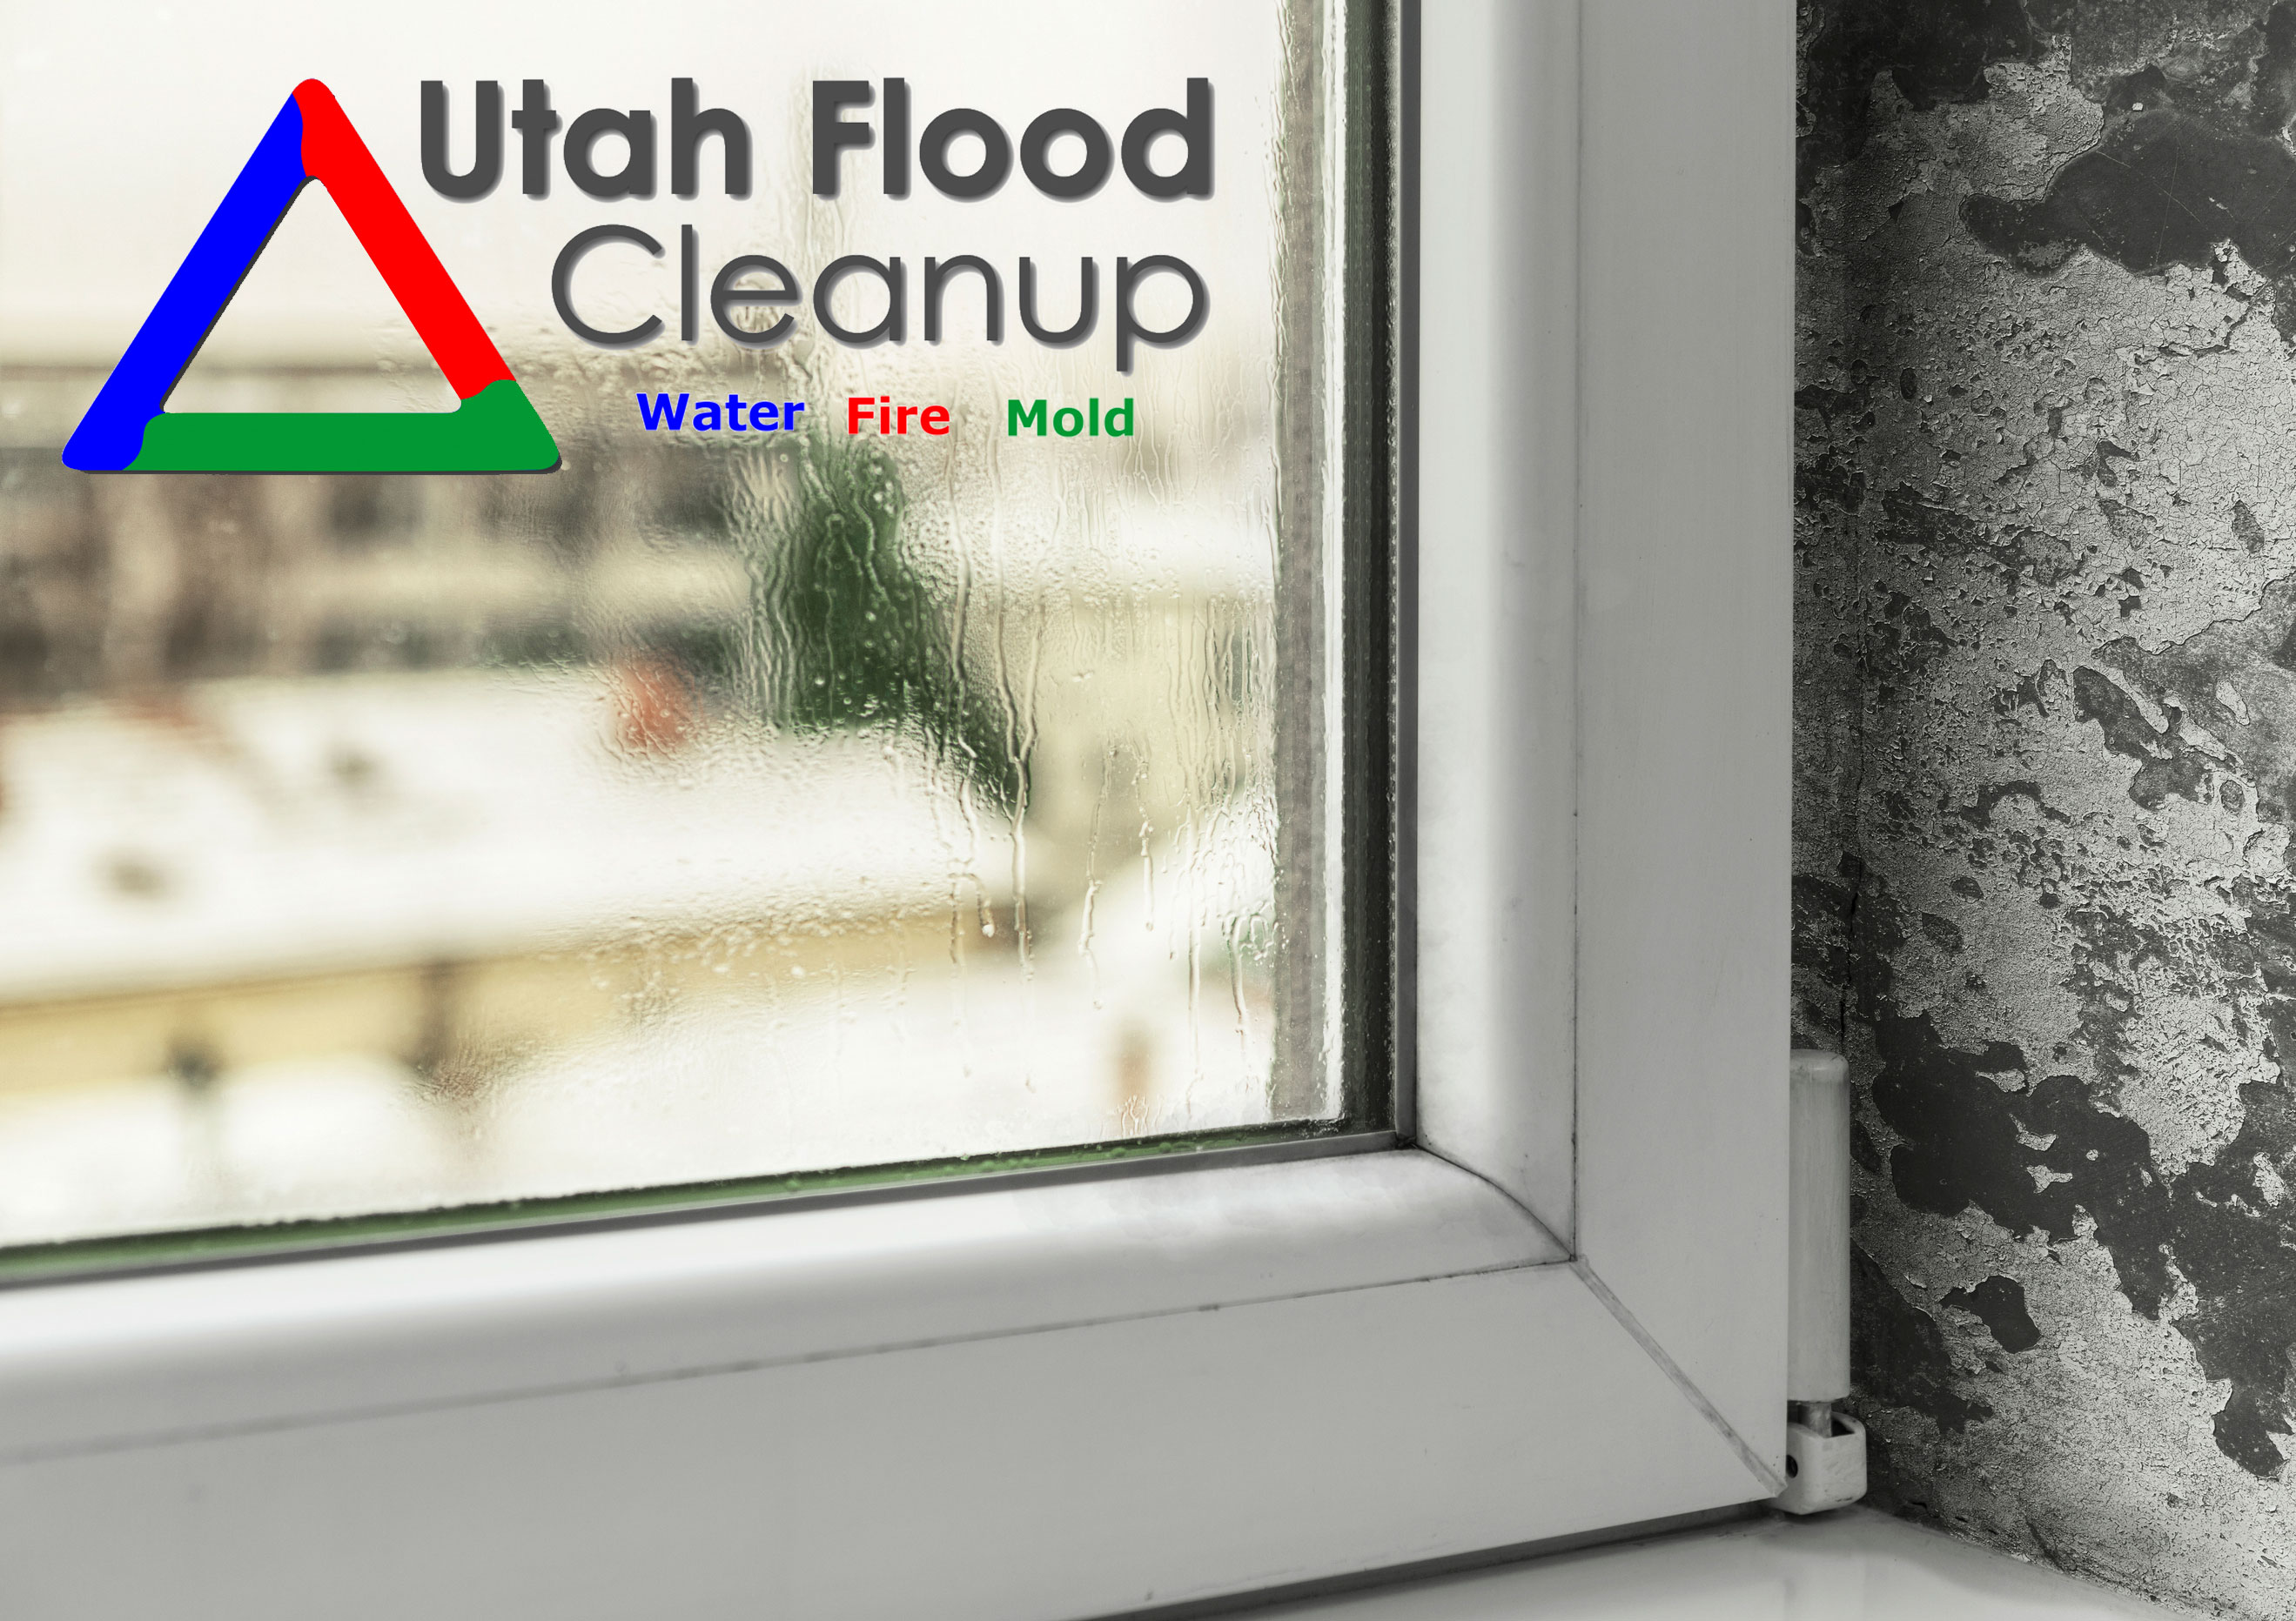 How To Identify Mold Types In A Home Utah Flood Cleanup